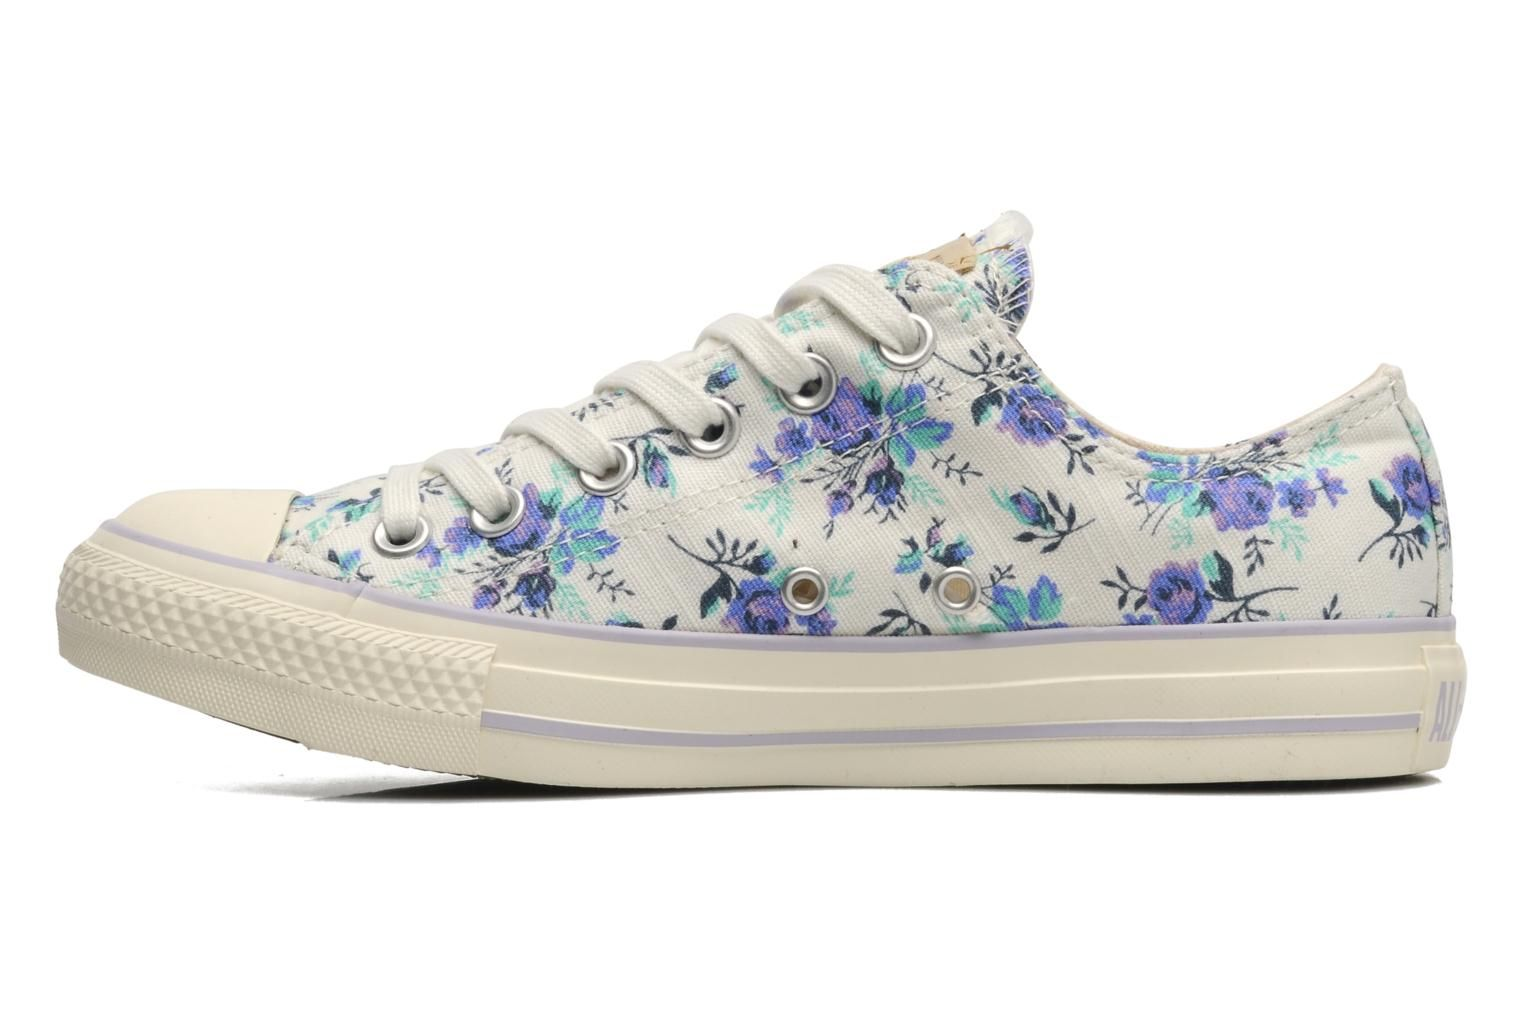 b845ede14ff1 Chuck Taylor All Star Floral Print Ox W by Converse (Multicolor ...